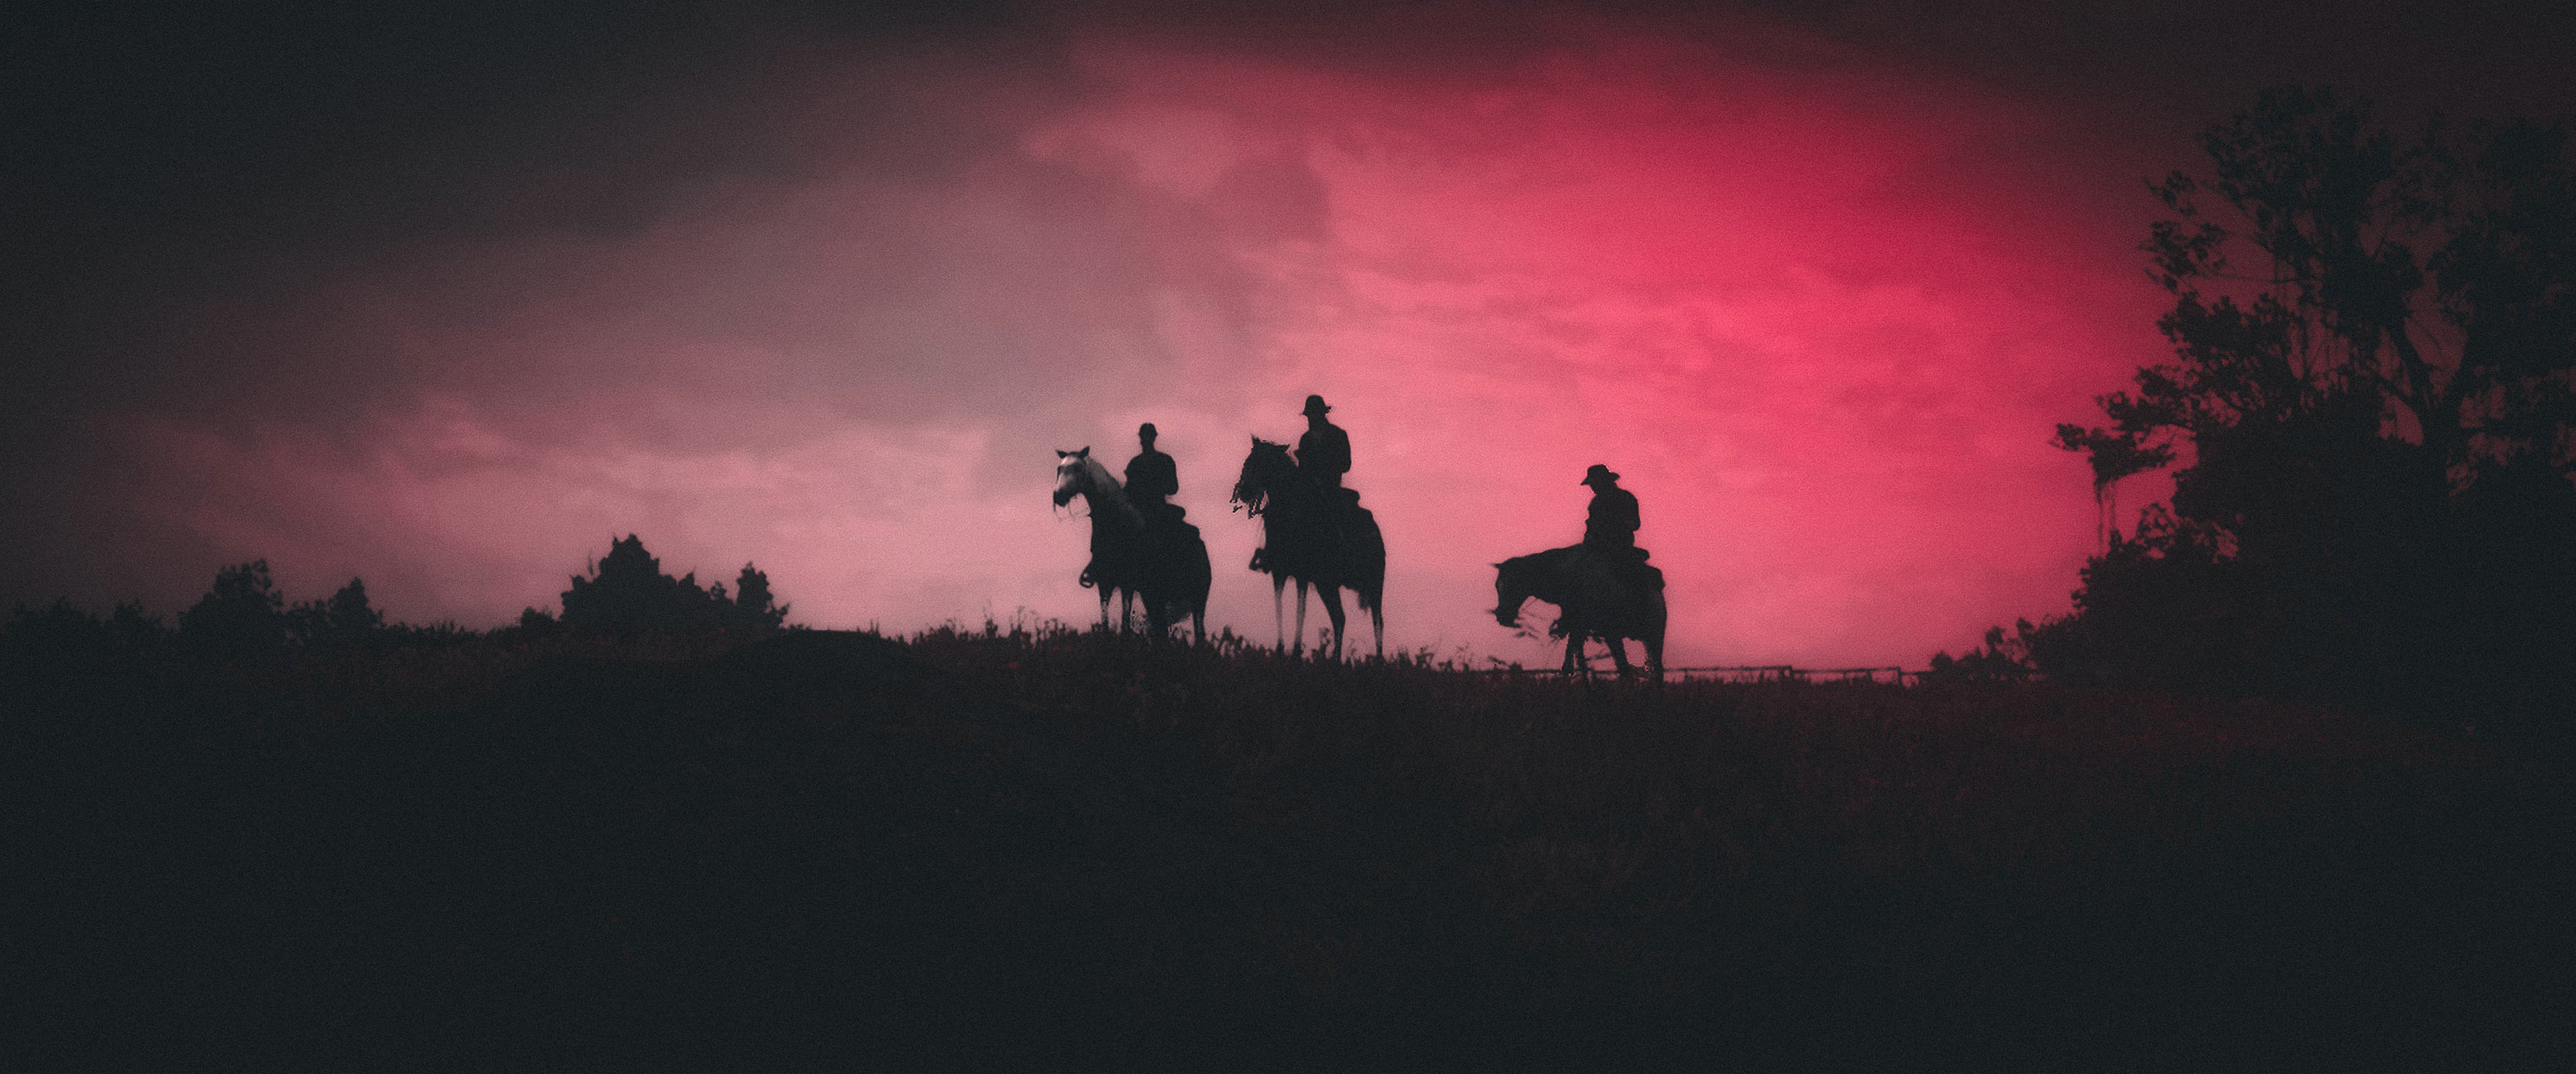 Red Dead Redemption 2 2019 Game 4k Hd Games 4k Wallpapers